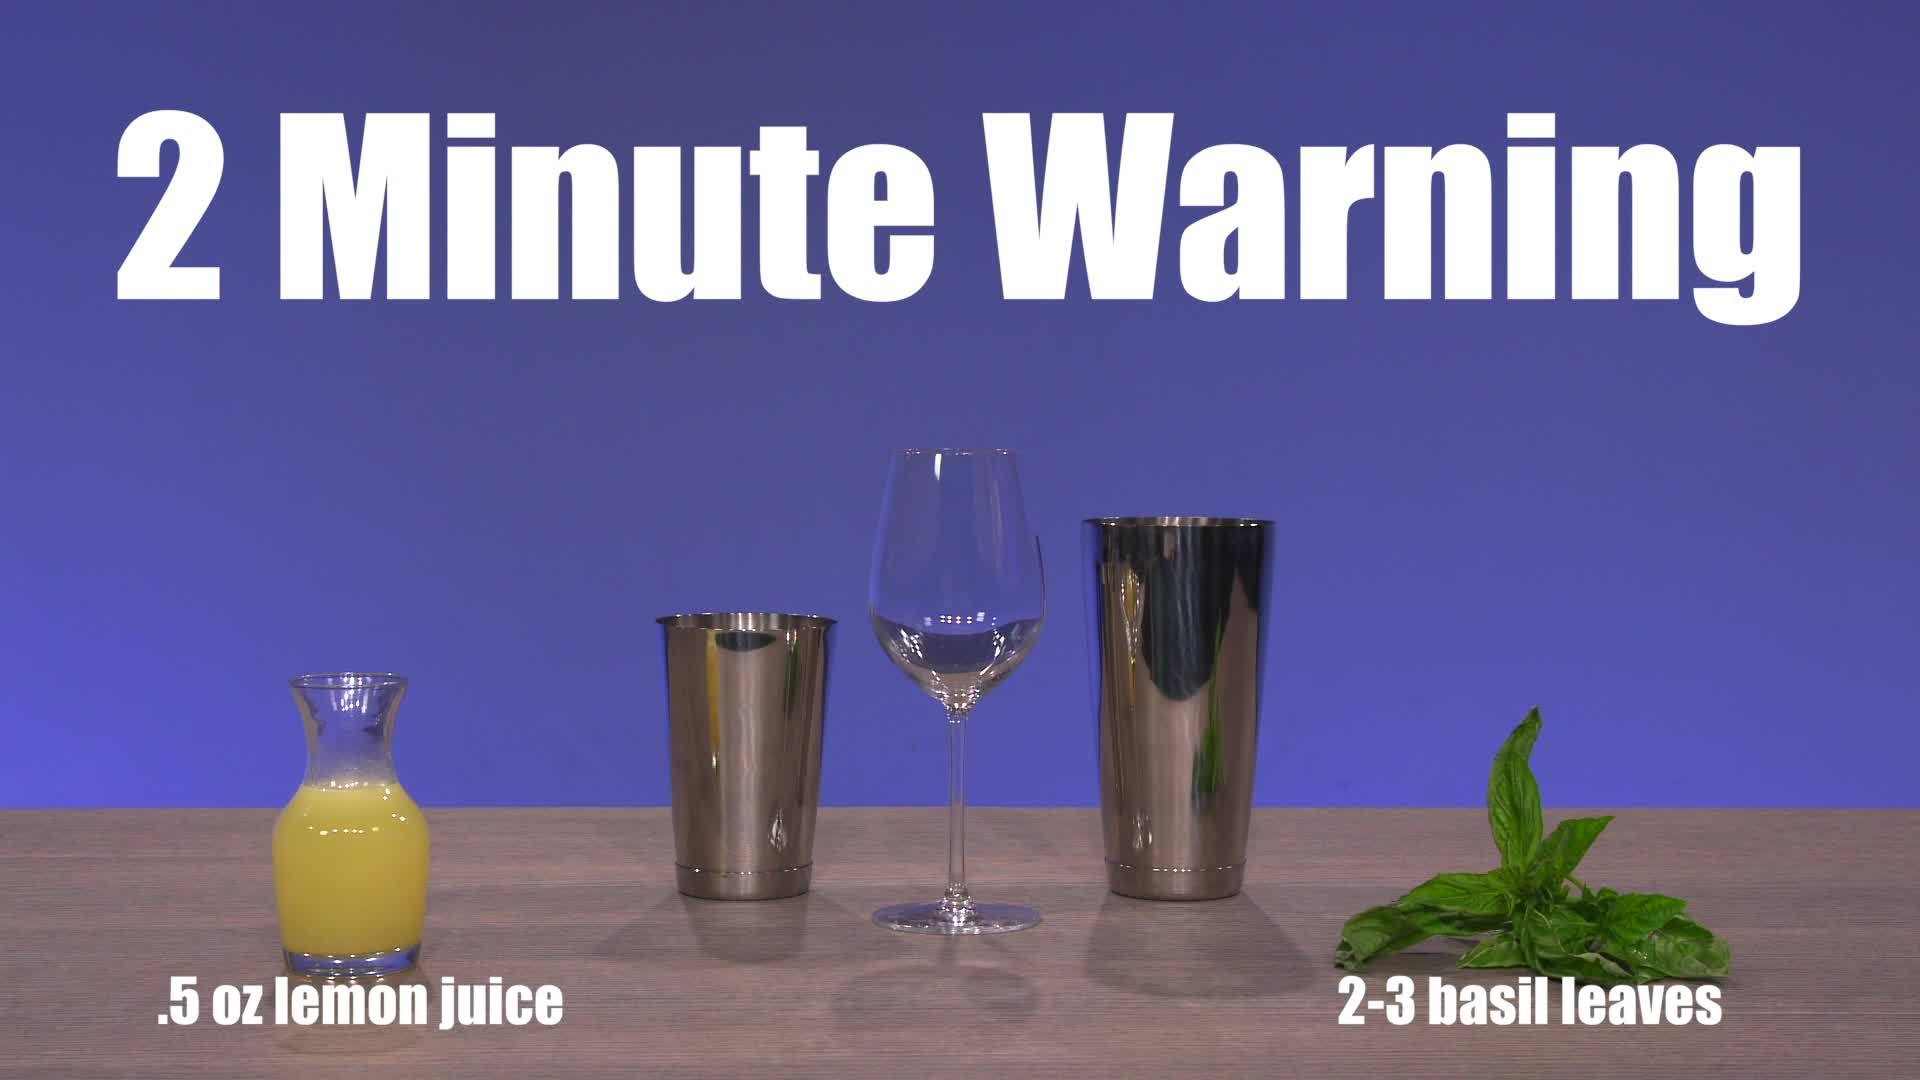 The_Big_Game_Tailgate____2_Minute_Warnin_2_20190114185138